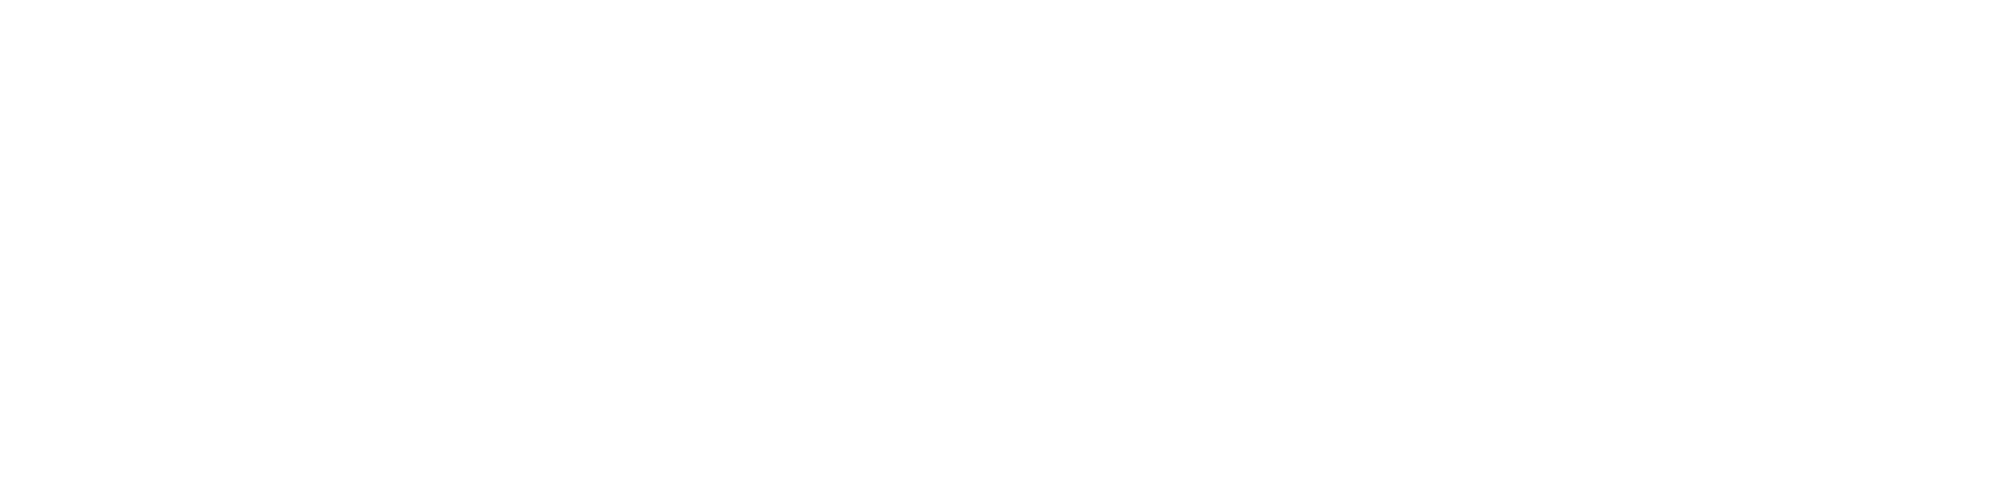 Triangle_Icon_White.png